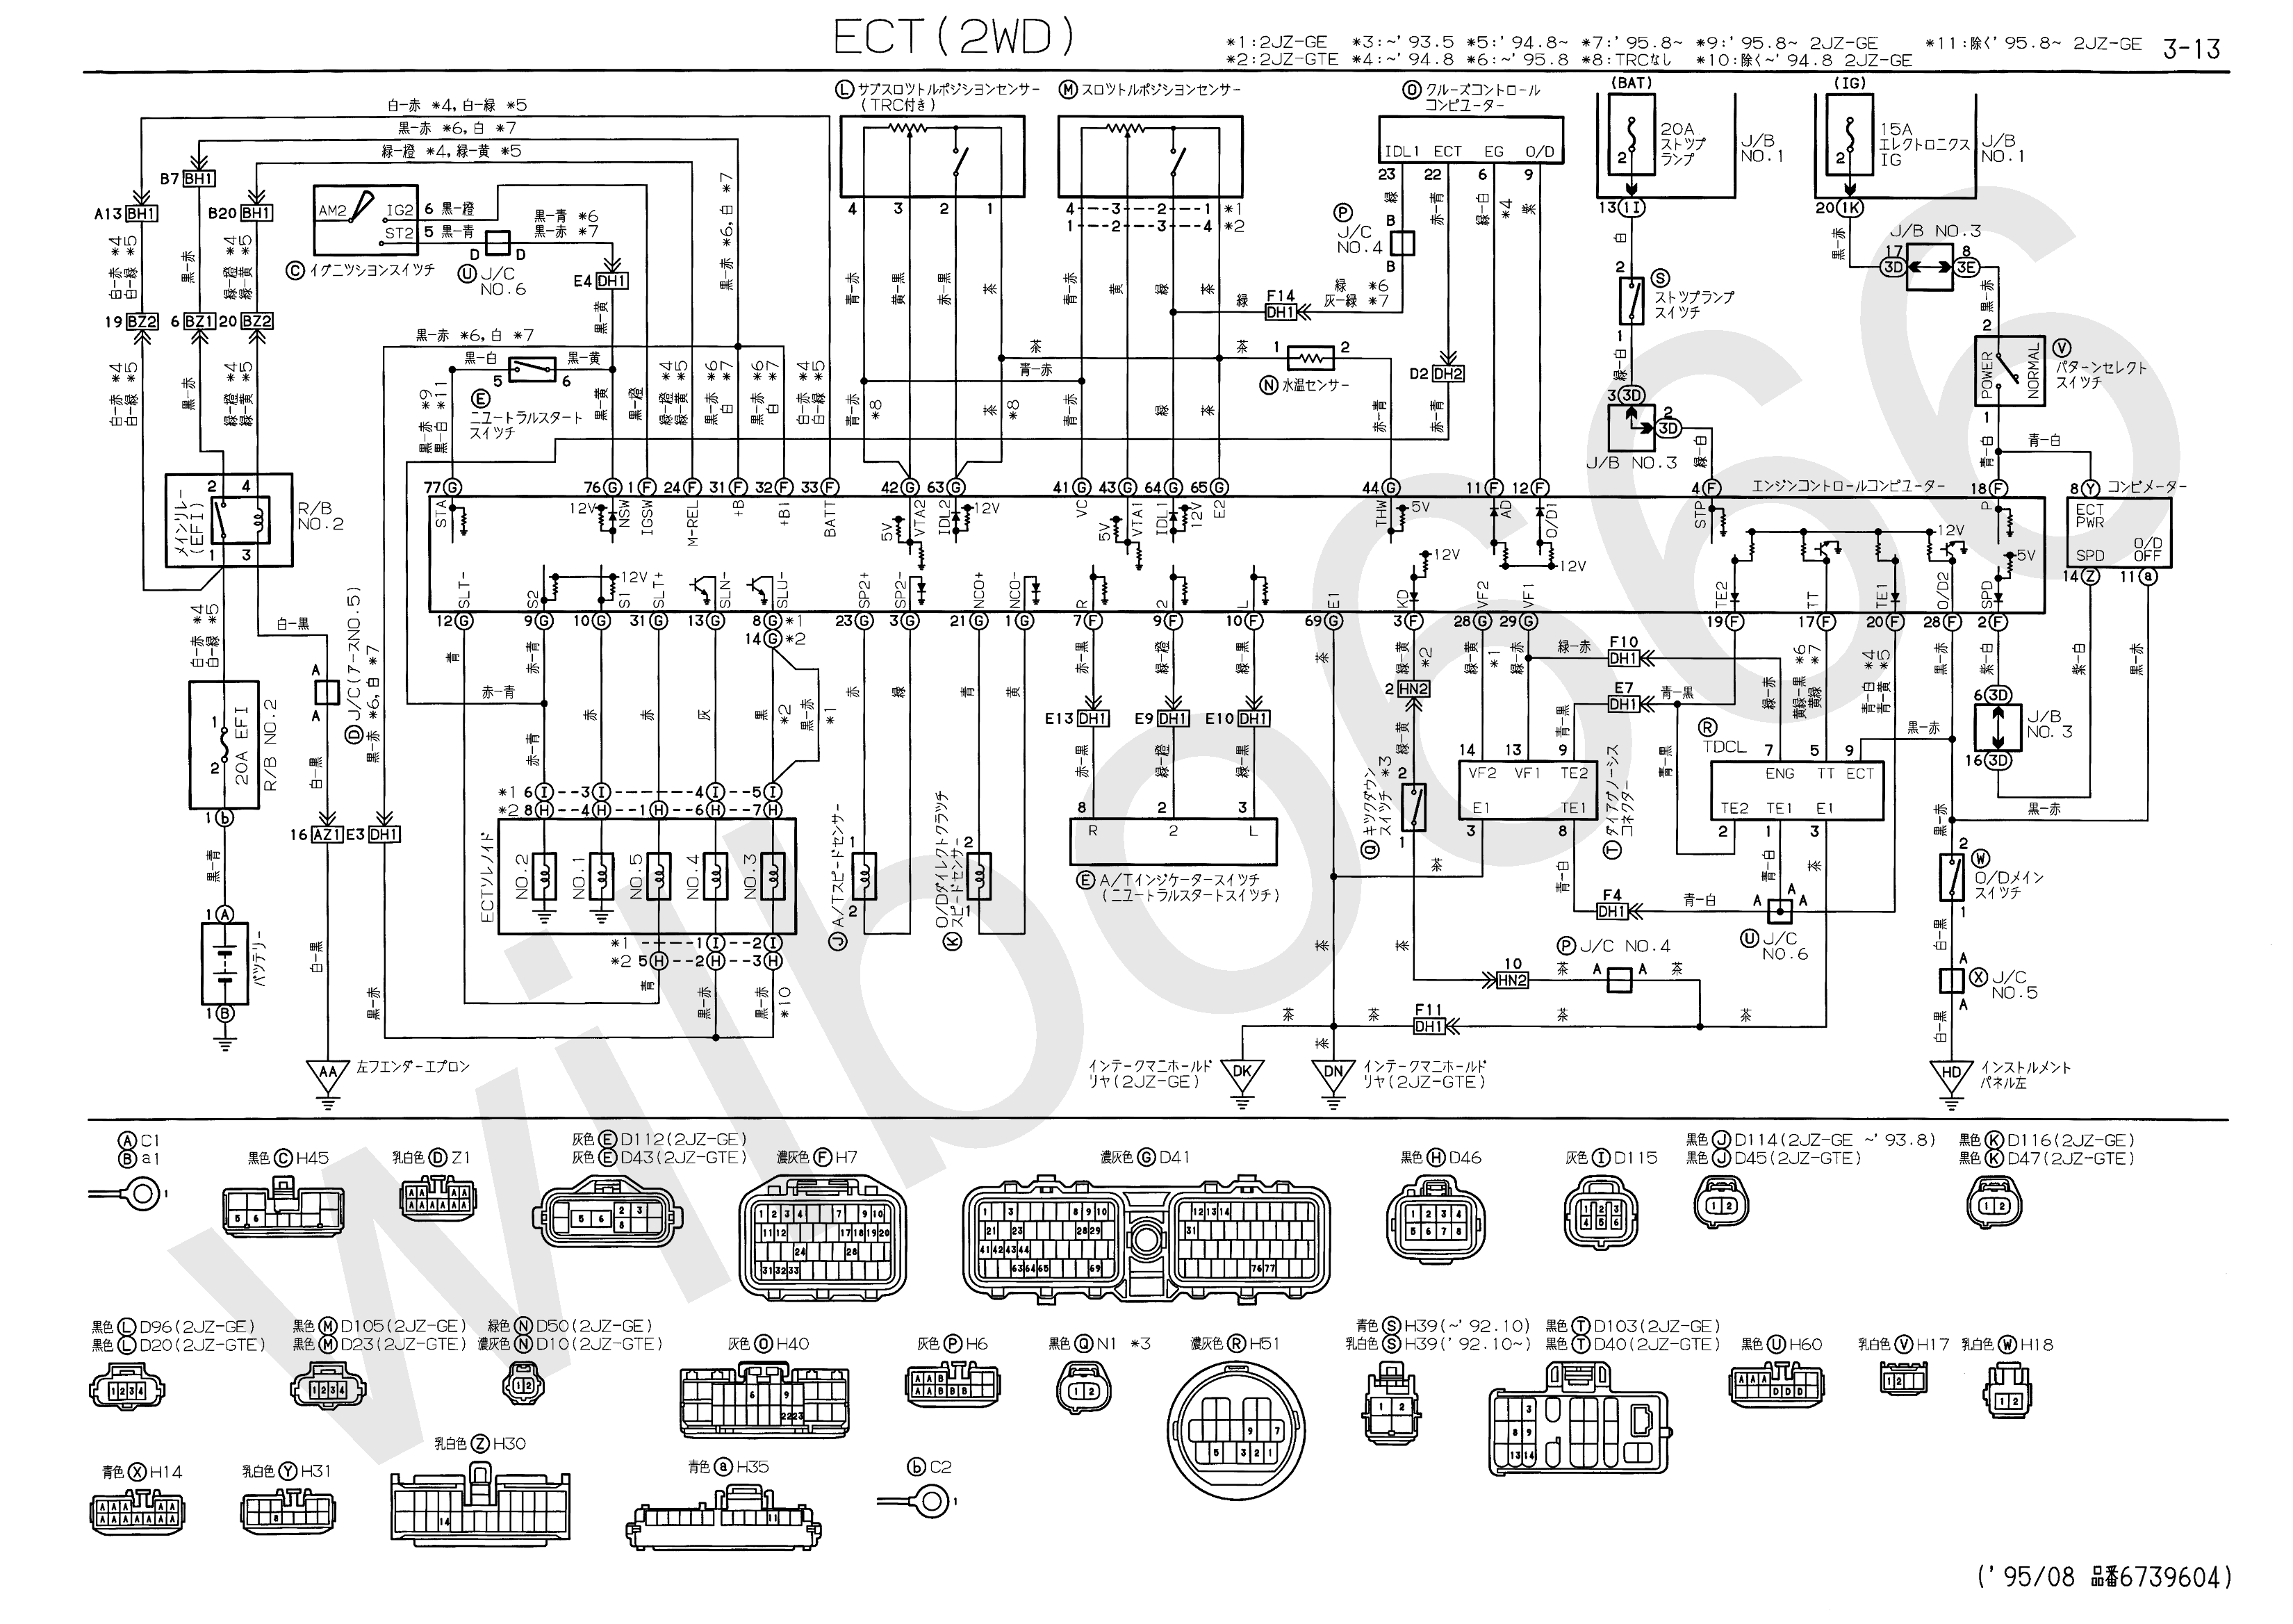 wiring diagram toyota wilbo666 licensed for noncommercial use  : toyota wiring diagrams - findchart.co